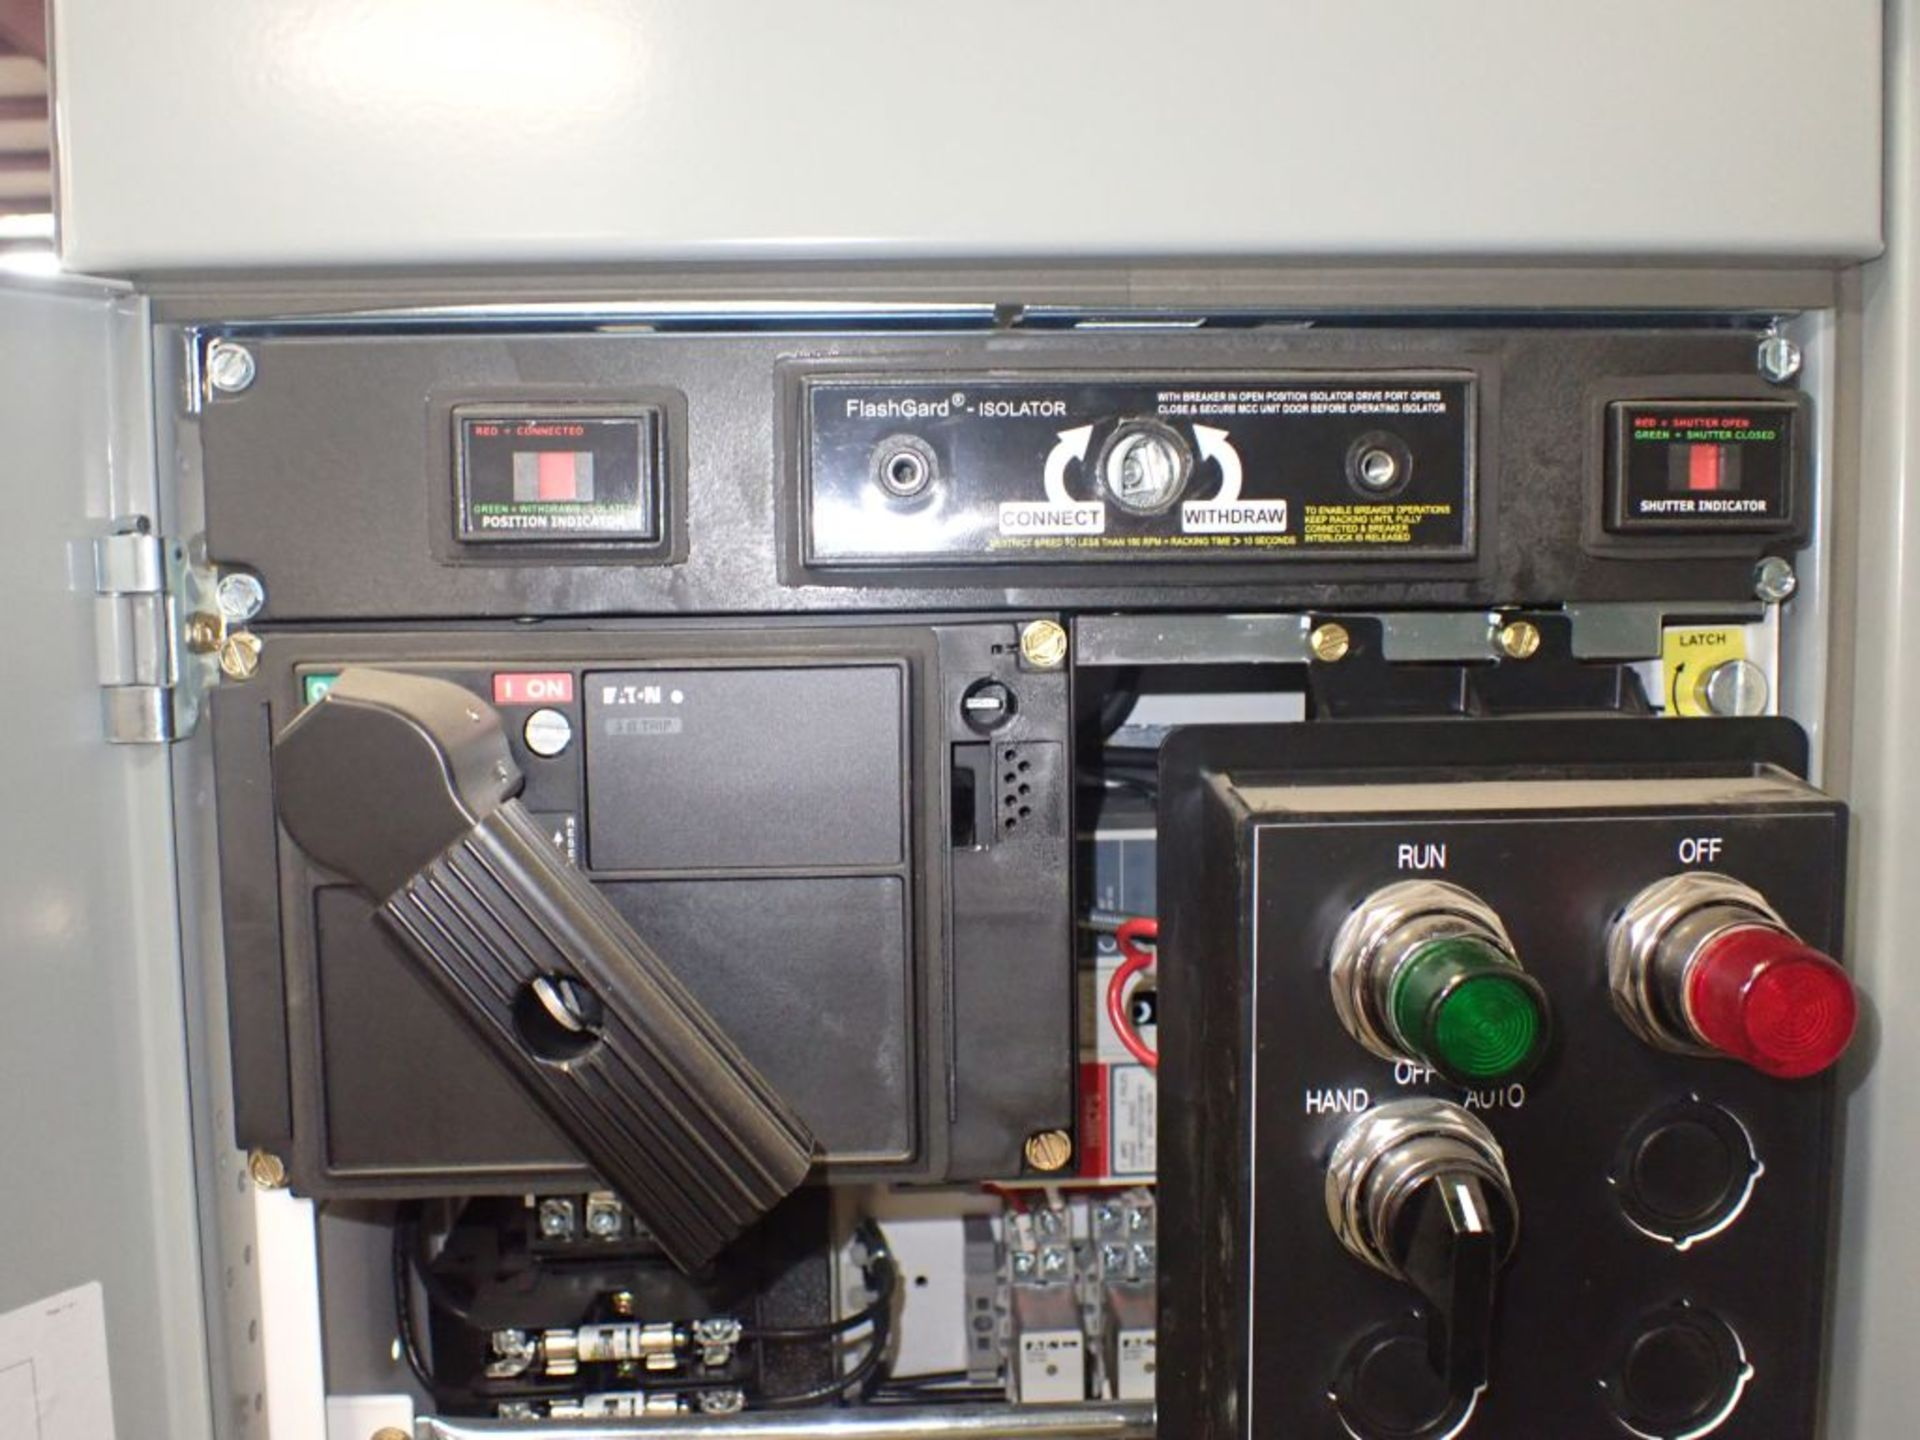 Eaton Freedom 2100 Series Motor Control Center | (2) F206-7A-10HP; (3) F206-15A-10HP; (1) FDRB-100A; - Image 49 of 87